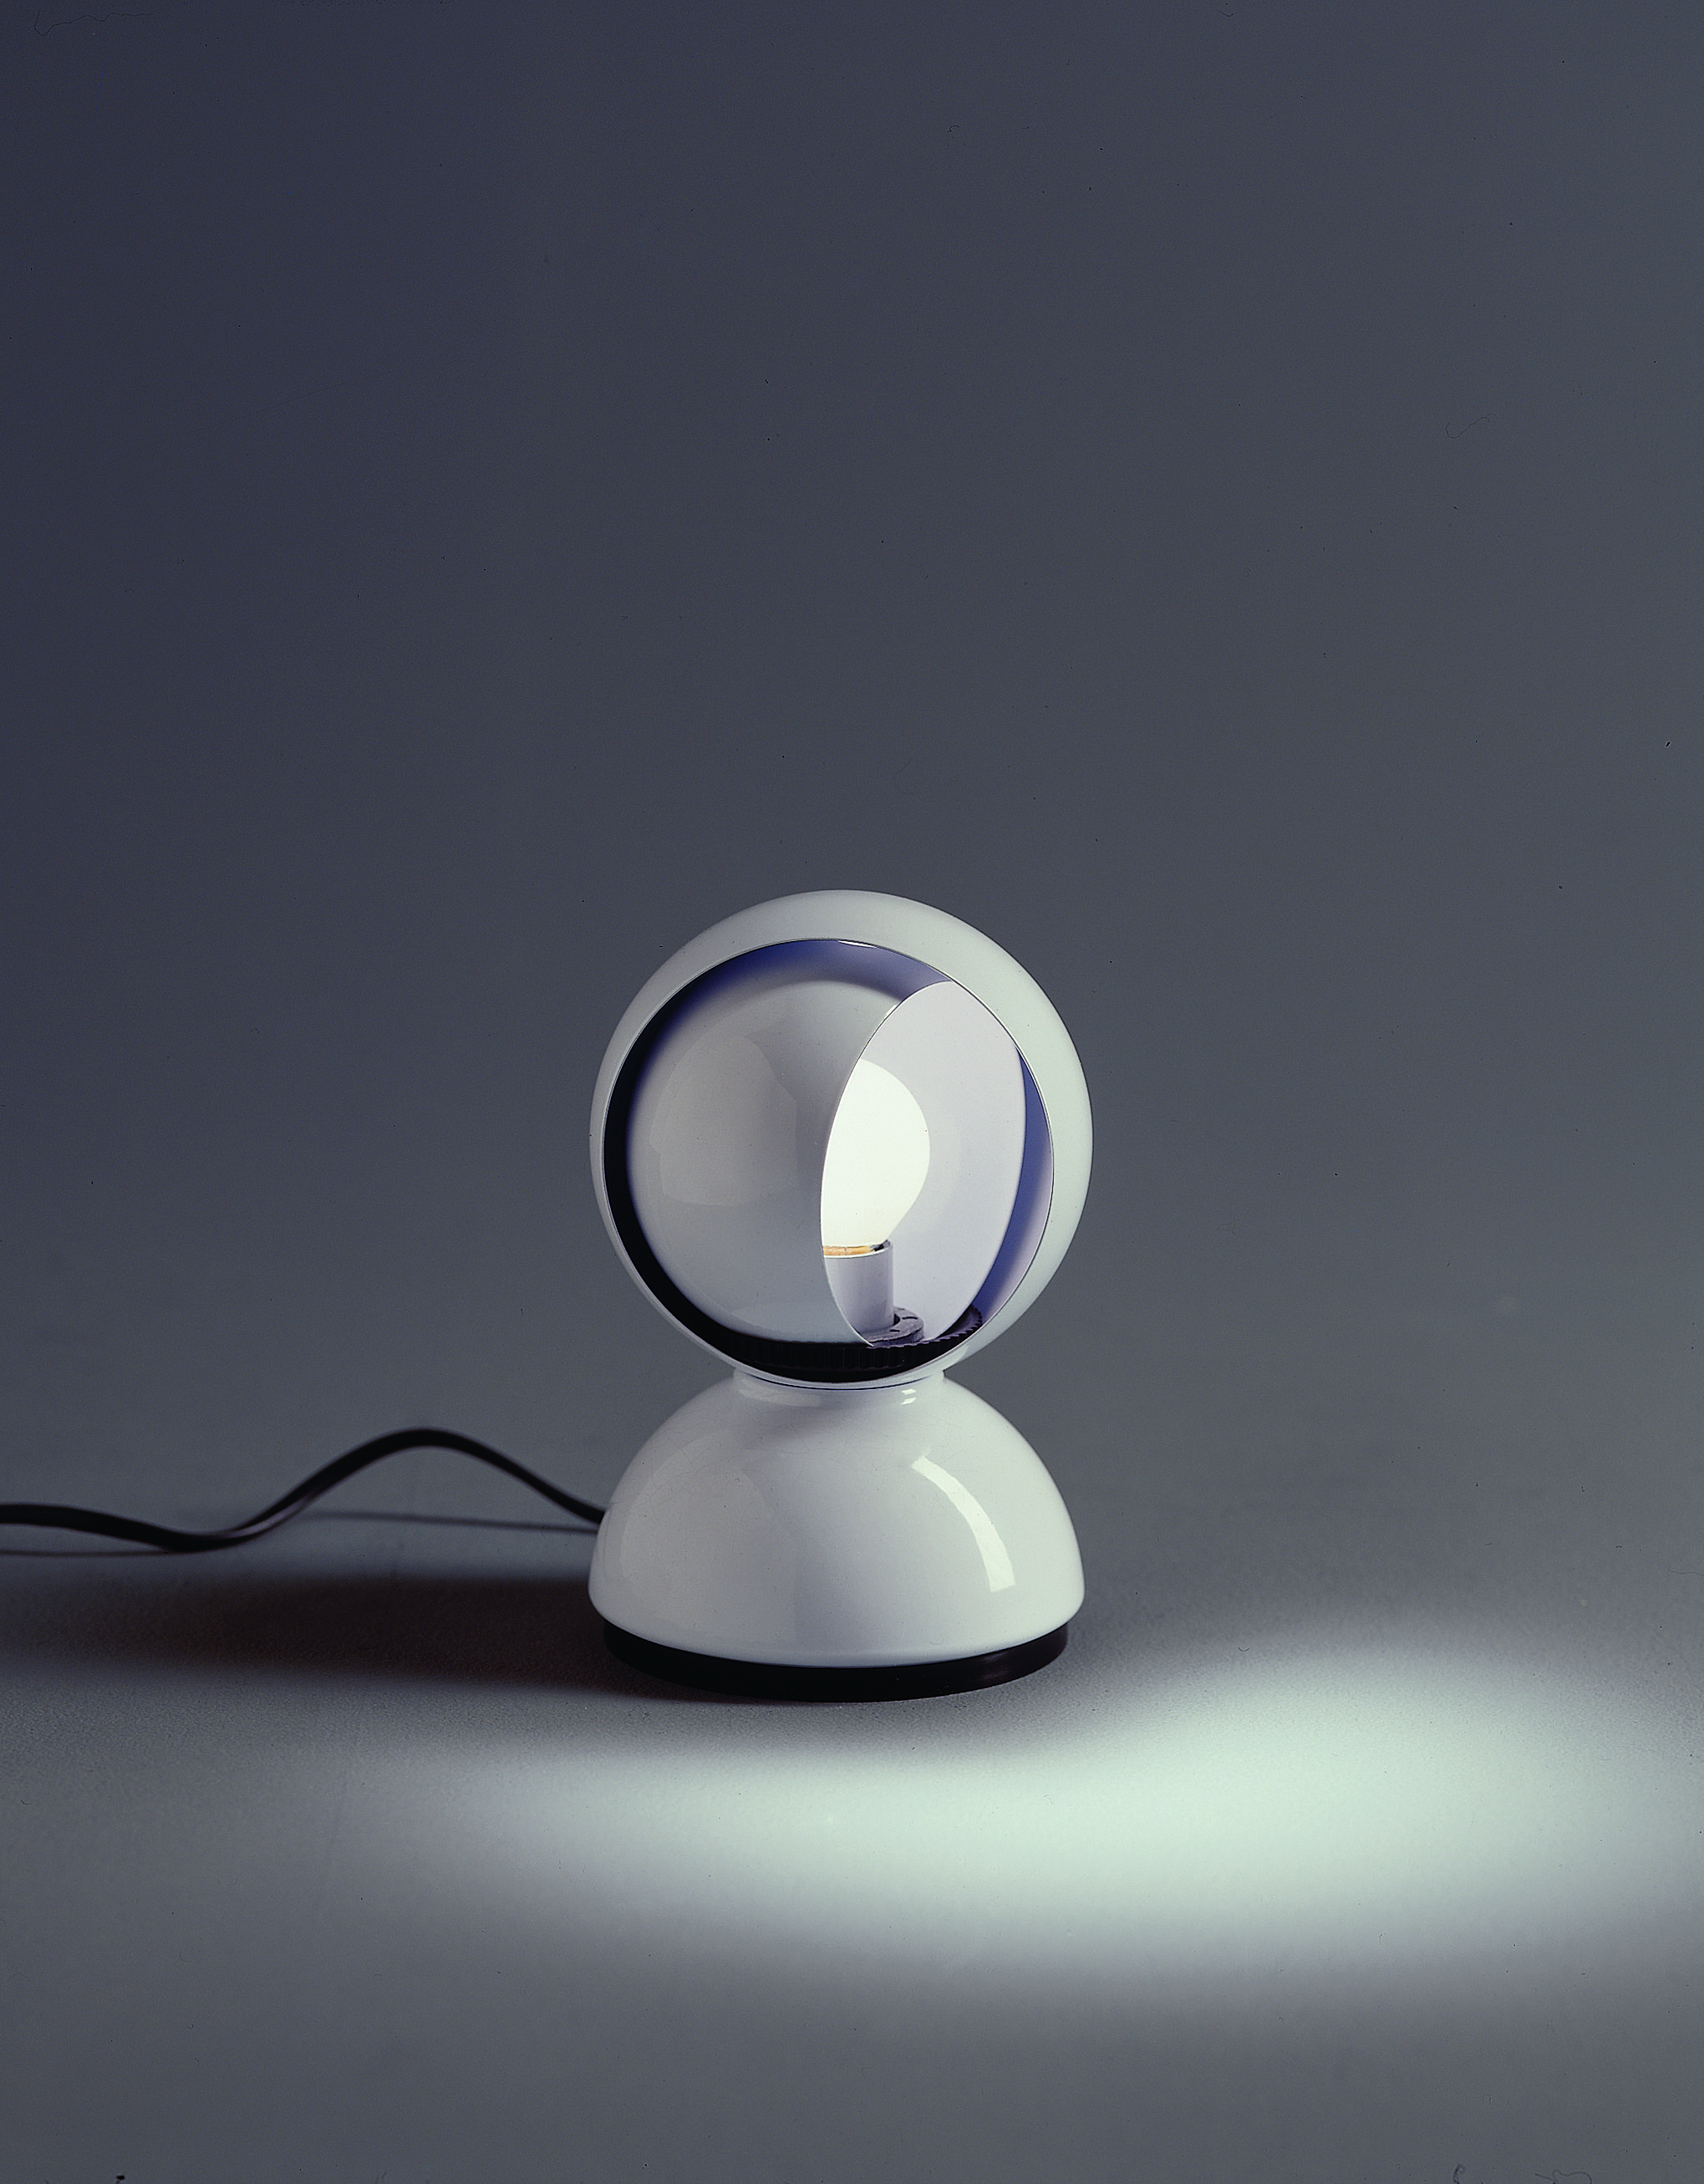 Eclisse White by Vico Magistretti 1967 lighting